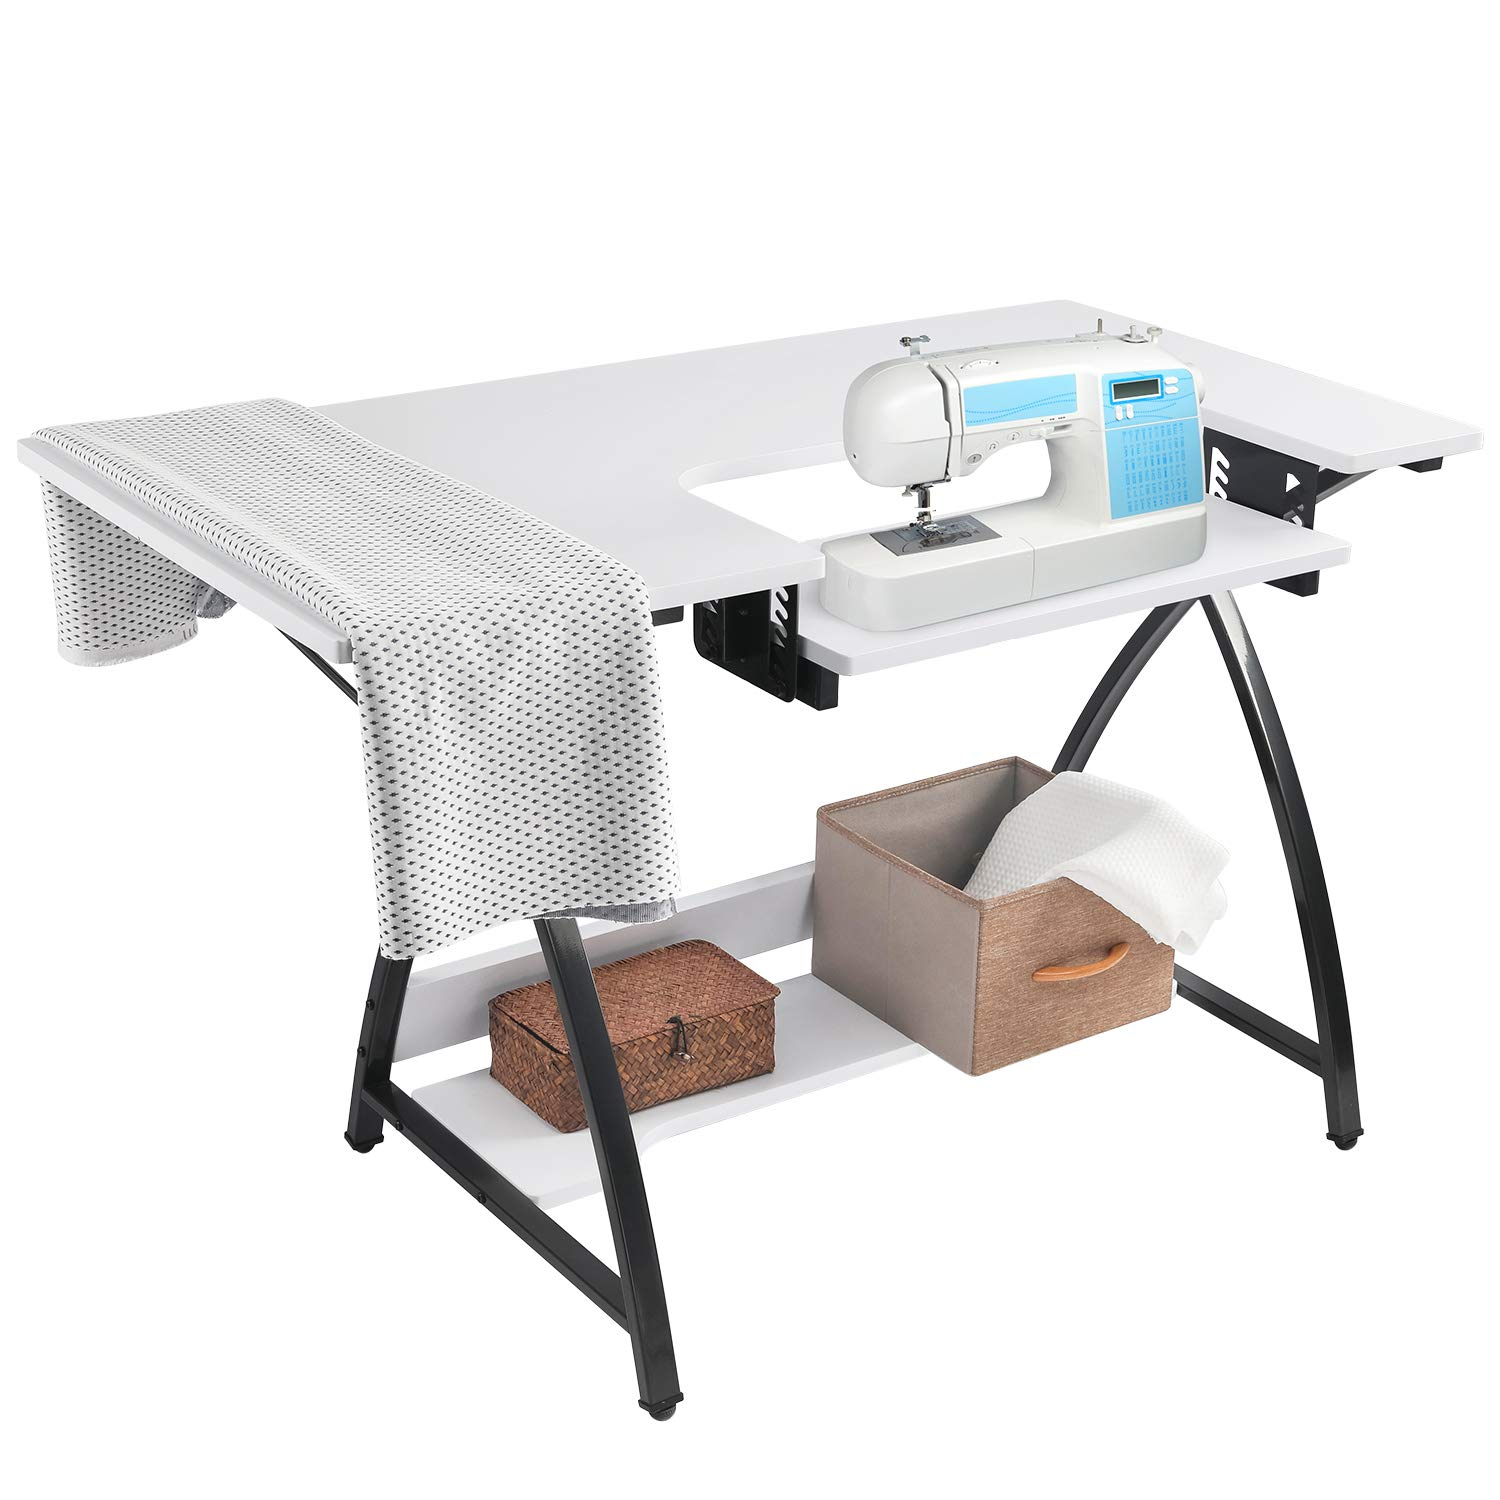 BAHOM Adjustable Sewing Craft Table Multipurpose, Sewing Machine Platform Computer Desk with Shelves, Craft Cutting Table, White by BAHOM